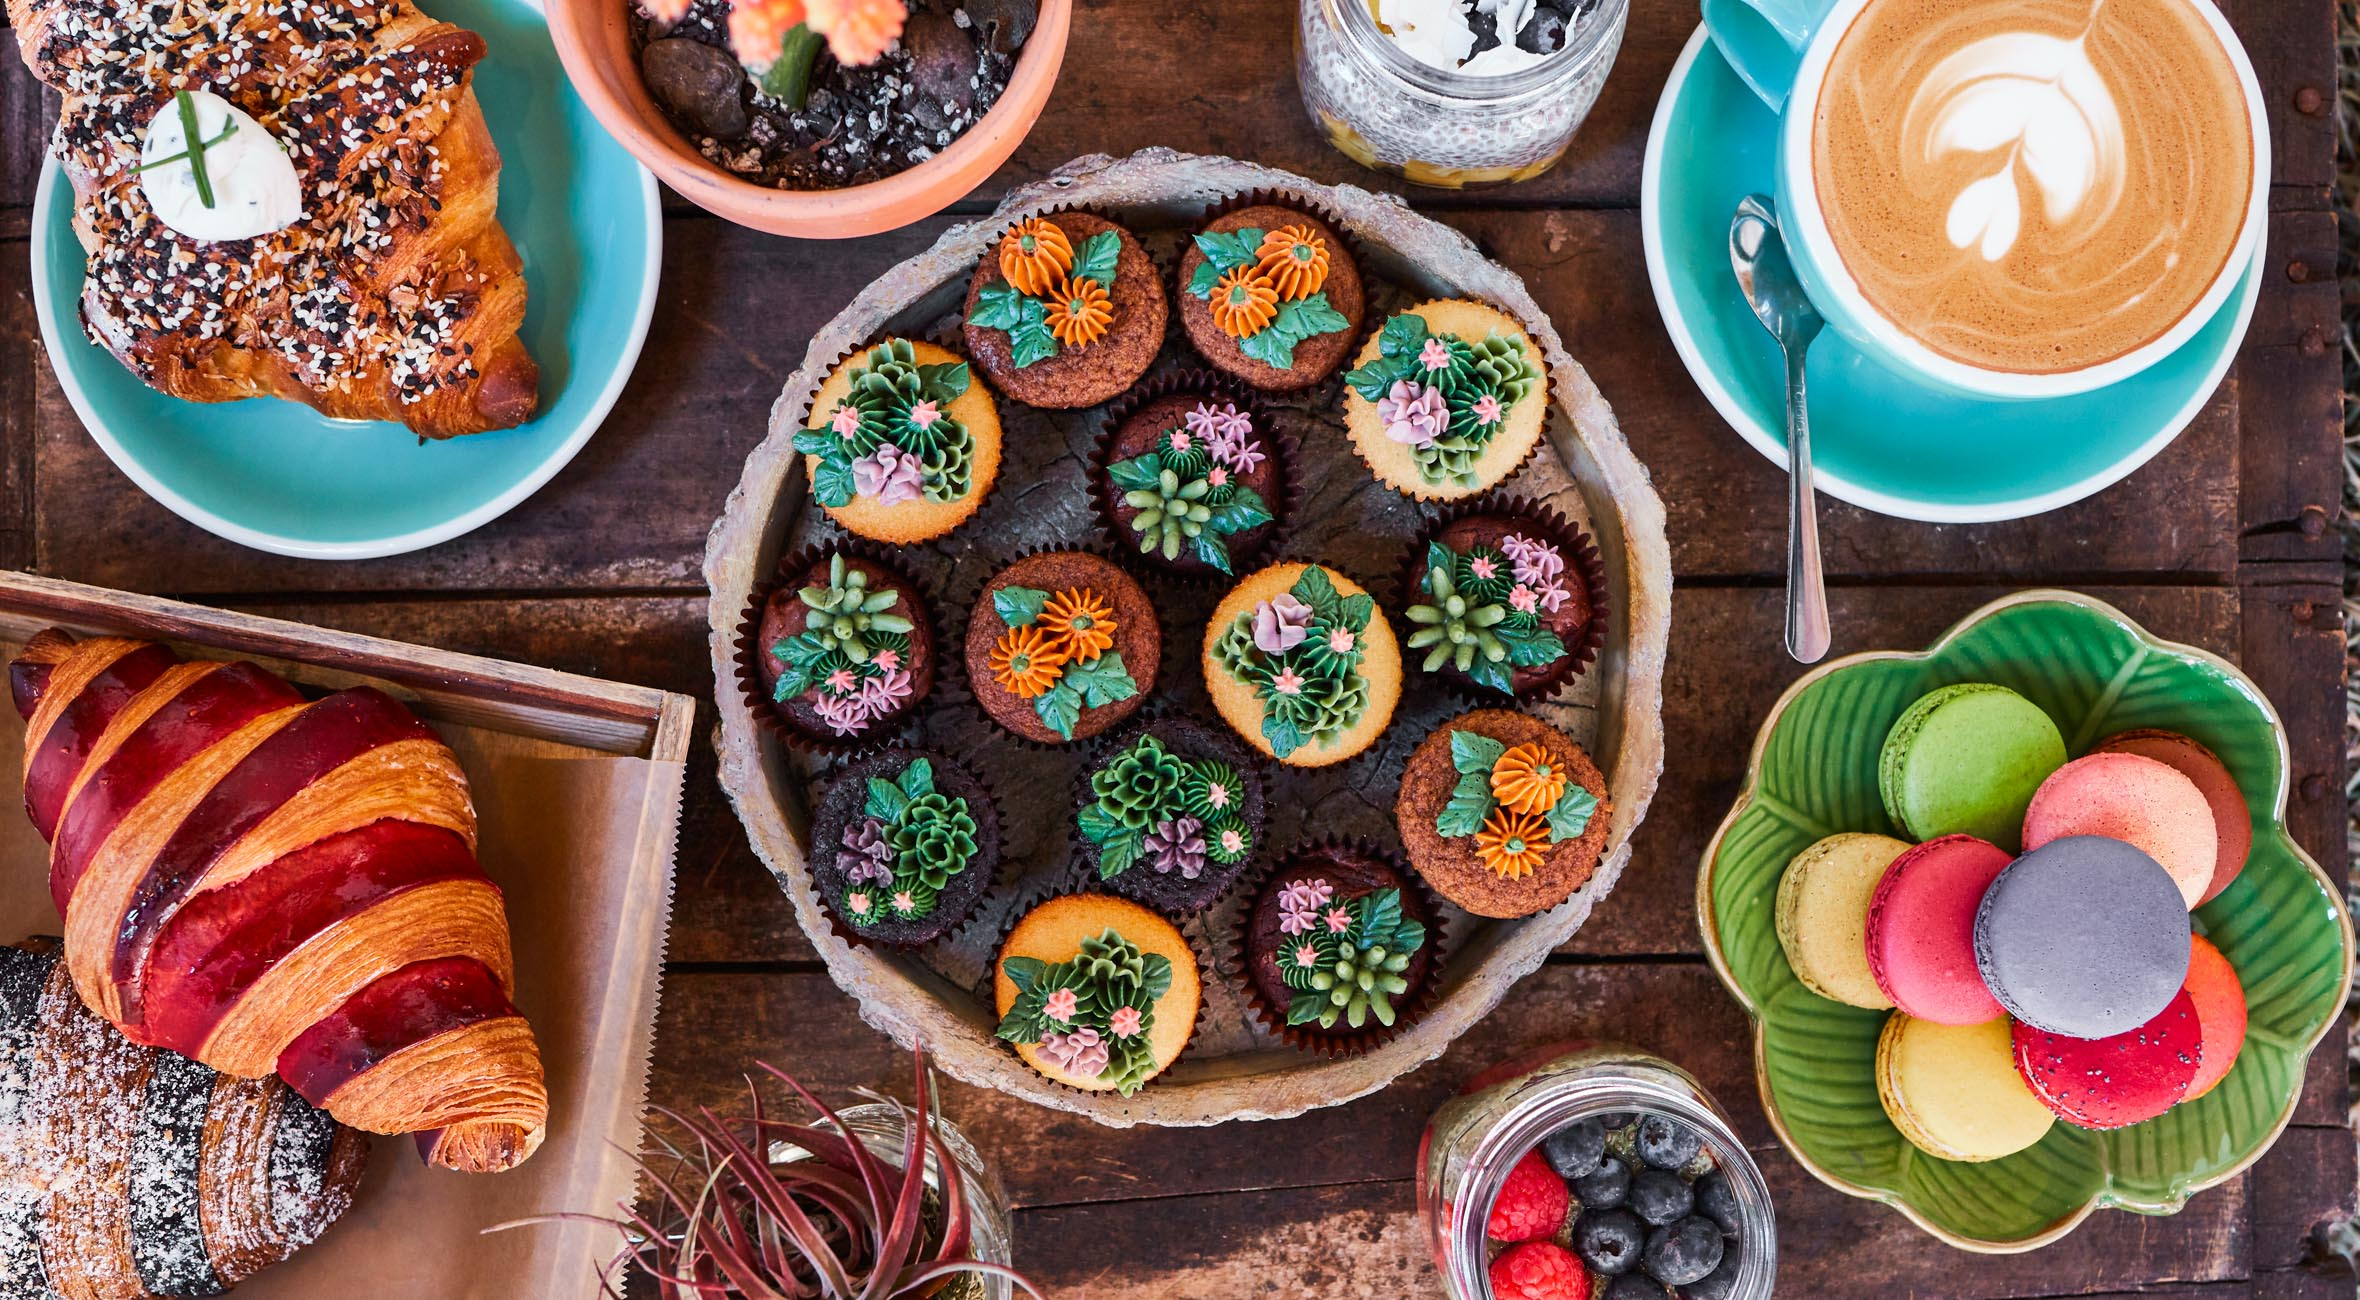 Pick Whatever You Like at Urban Backyard in Nolita – From Specialty Coffee & Tea to Chia Pudding, Cakes and Pastries etc.